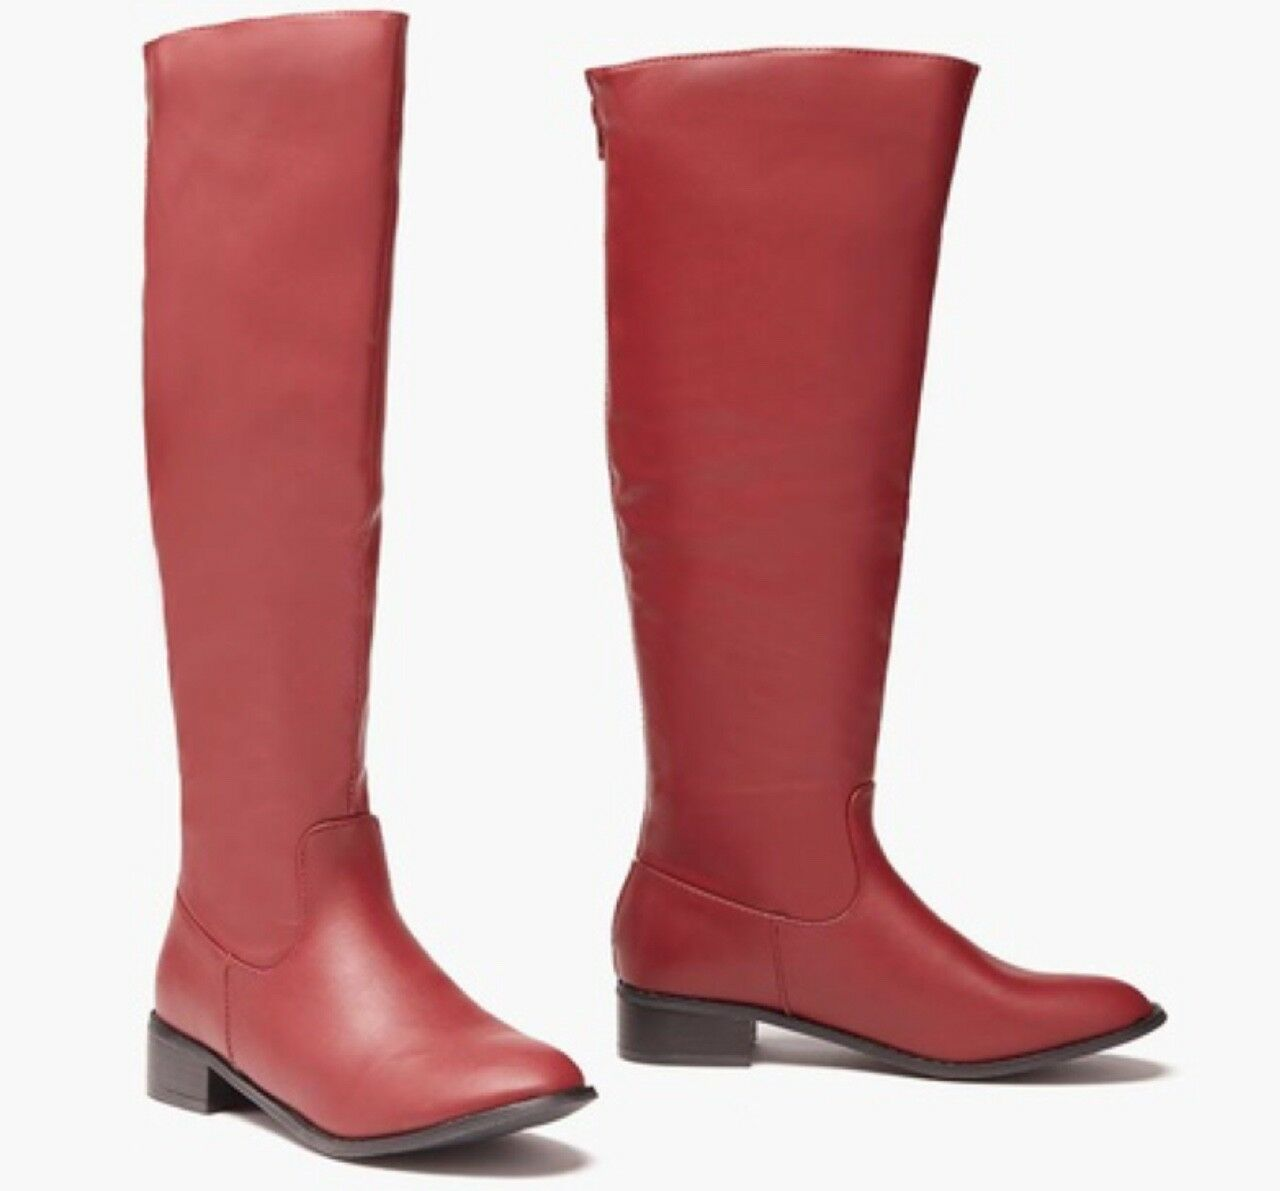 Sociology Damens's or Tall Khloe Stiefel Burgundy or Damens's Braun Sz 6, 8 or 10 NEW 85a170